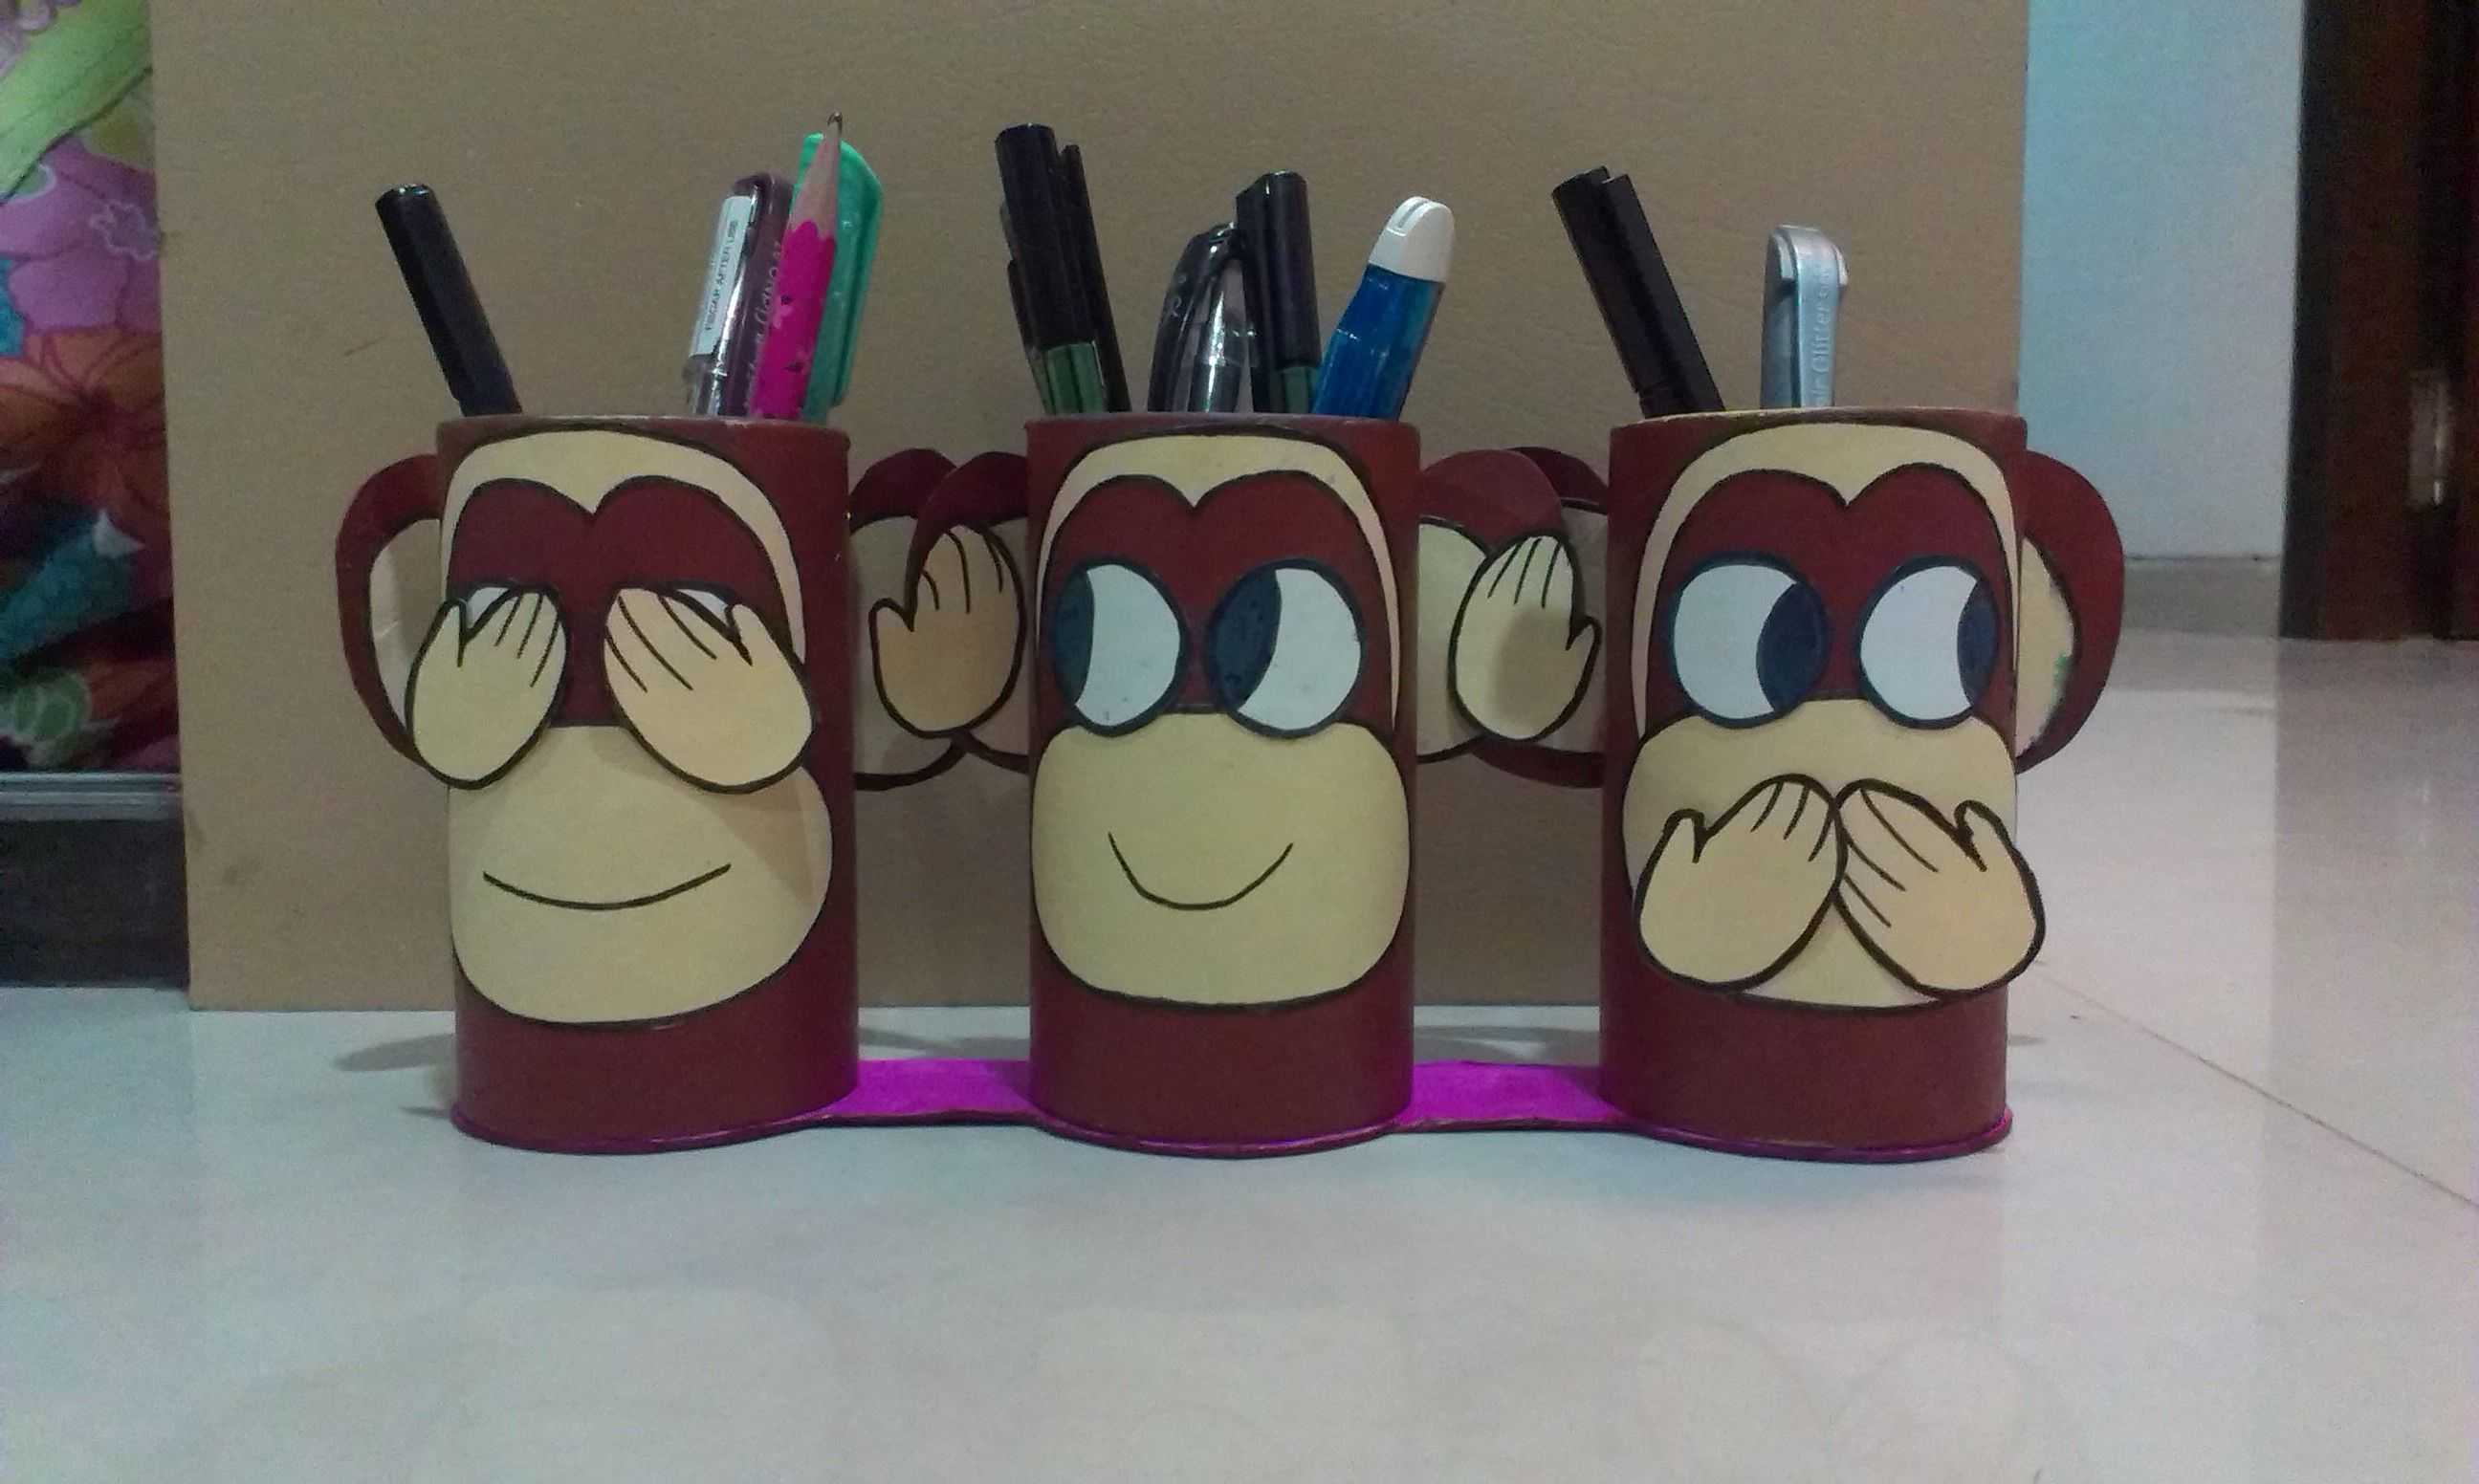 Gandhiji 39 s 3 monkeys pen stand diy diypenstand best out for Craft work best out of waste